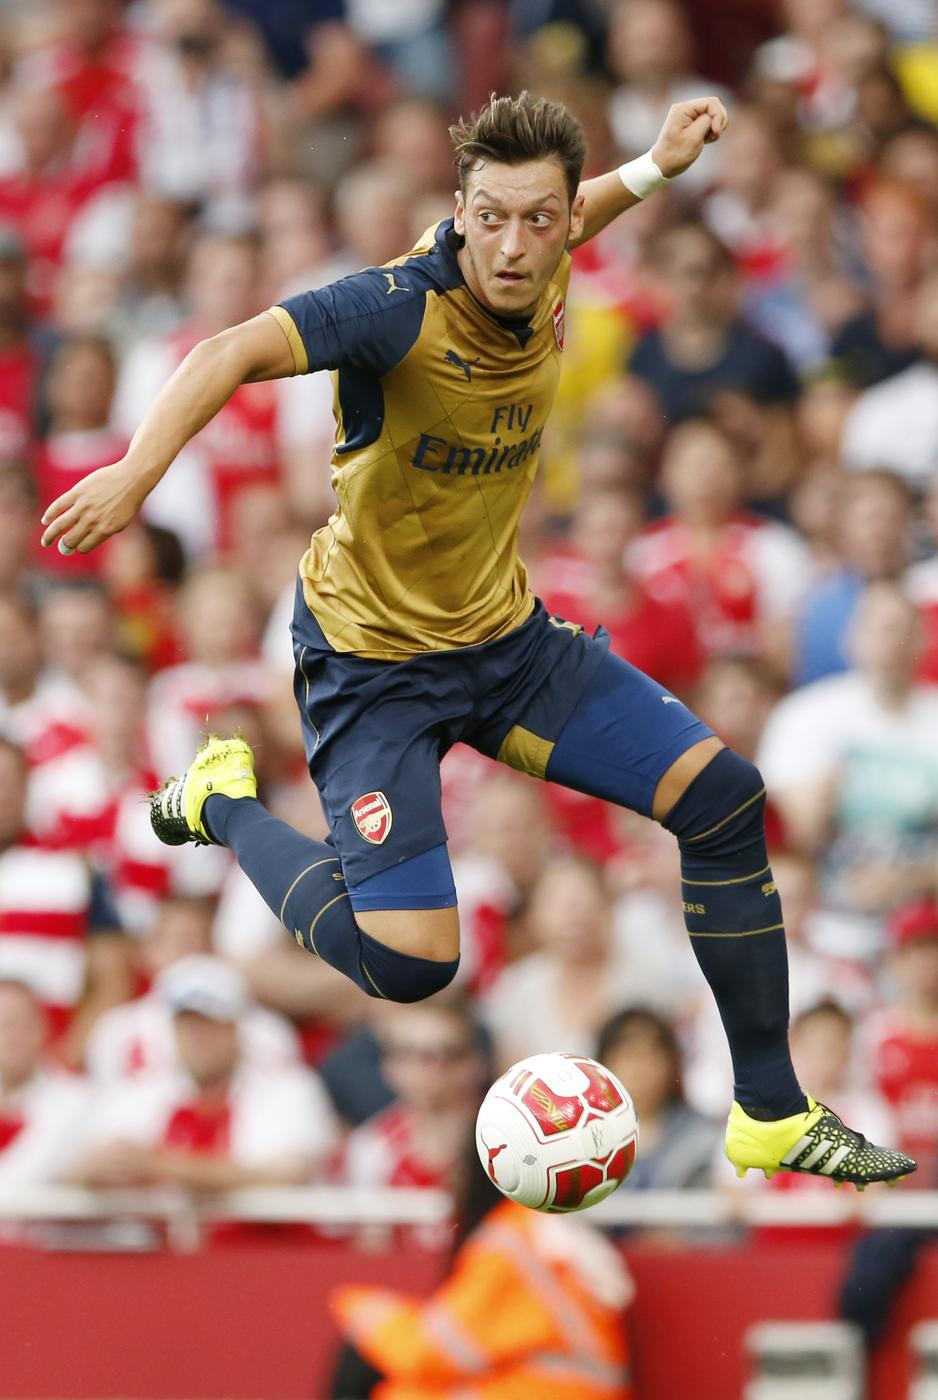 Why Arsenal's Mesut Ozil could finally be ready to justify his £42.5million transfer fee